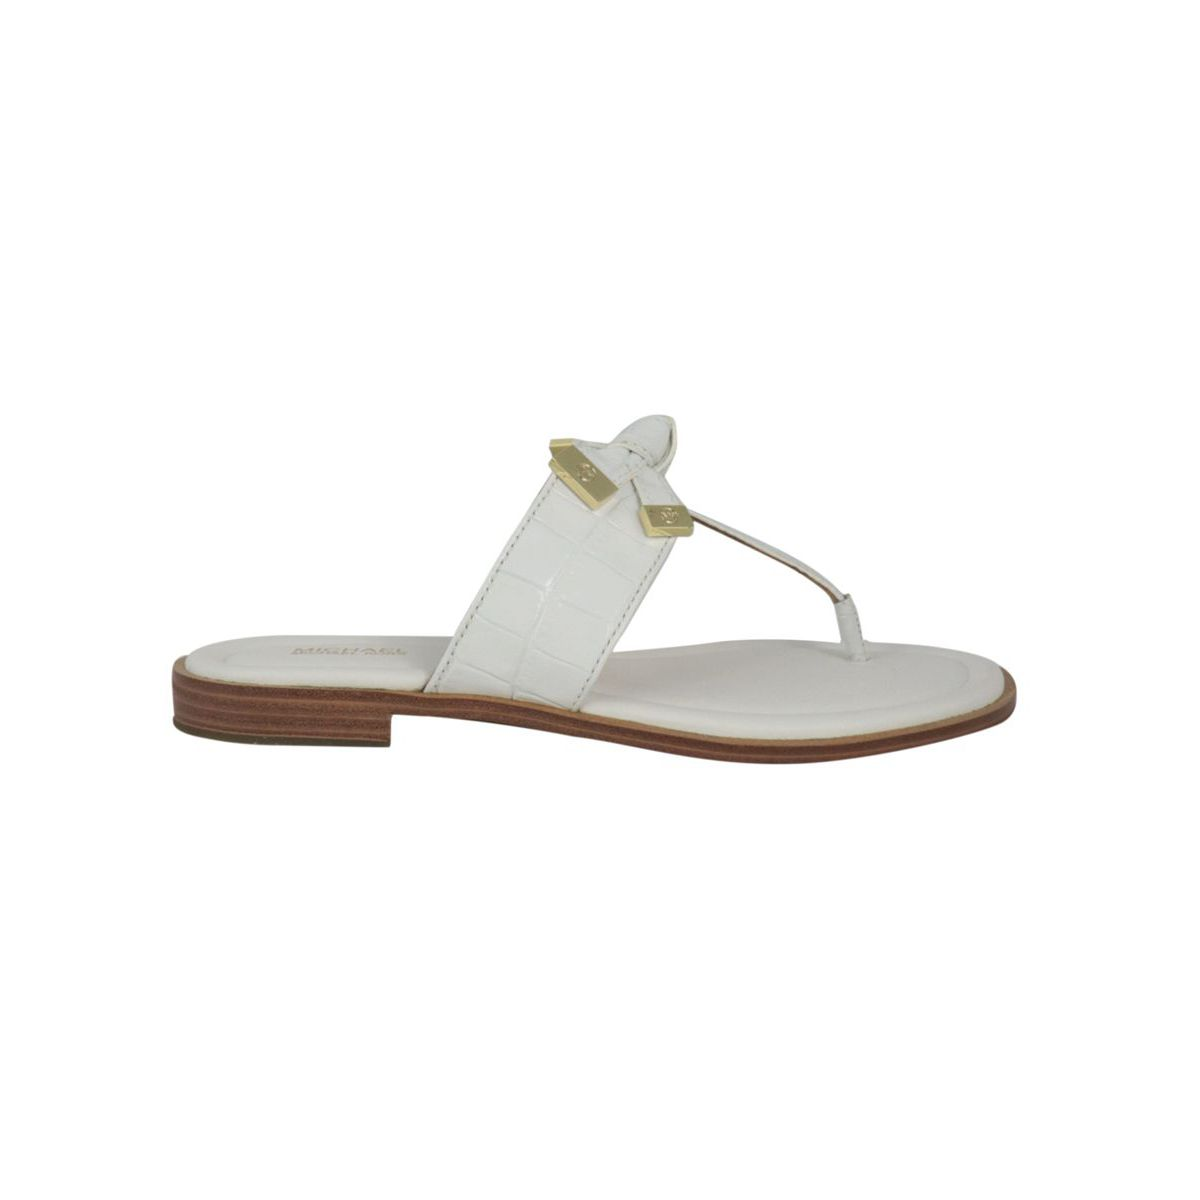 Leather thong sandal with metallic finishes Optical white Michael Kors